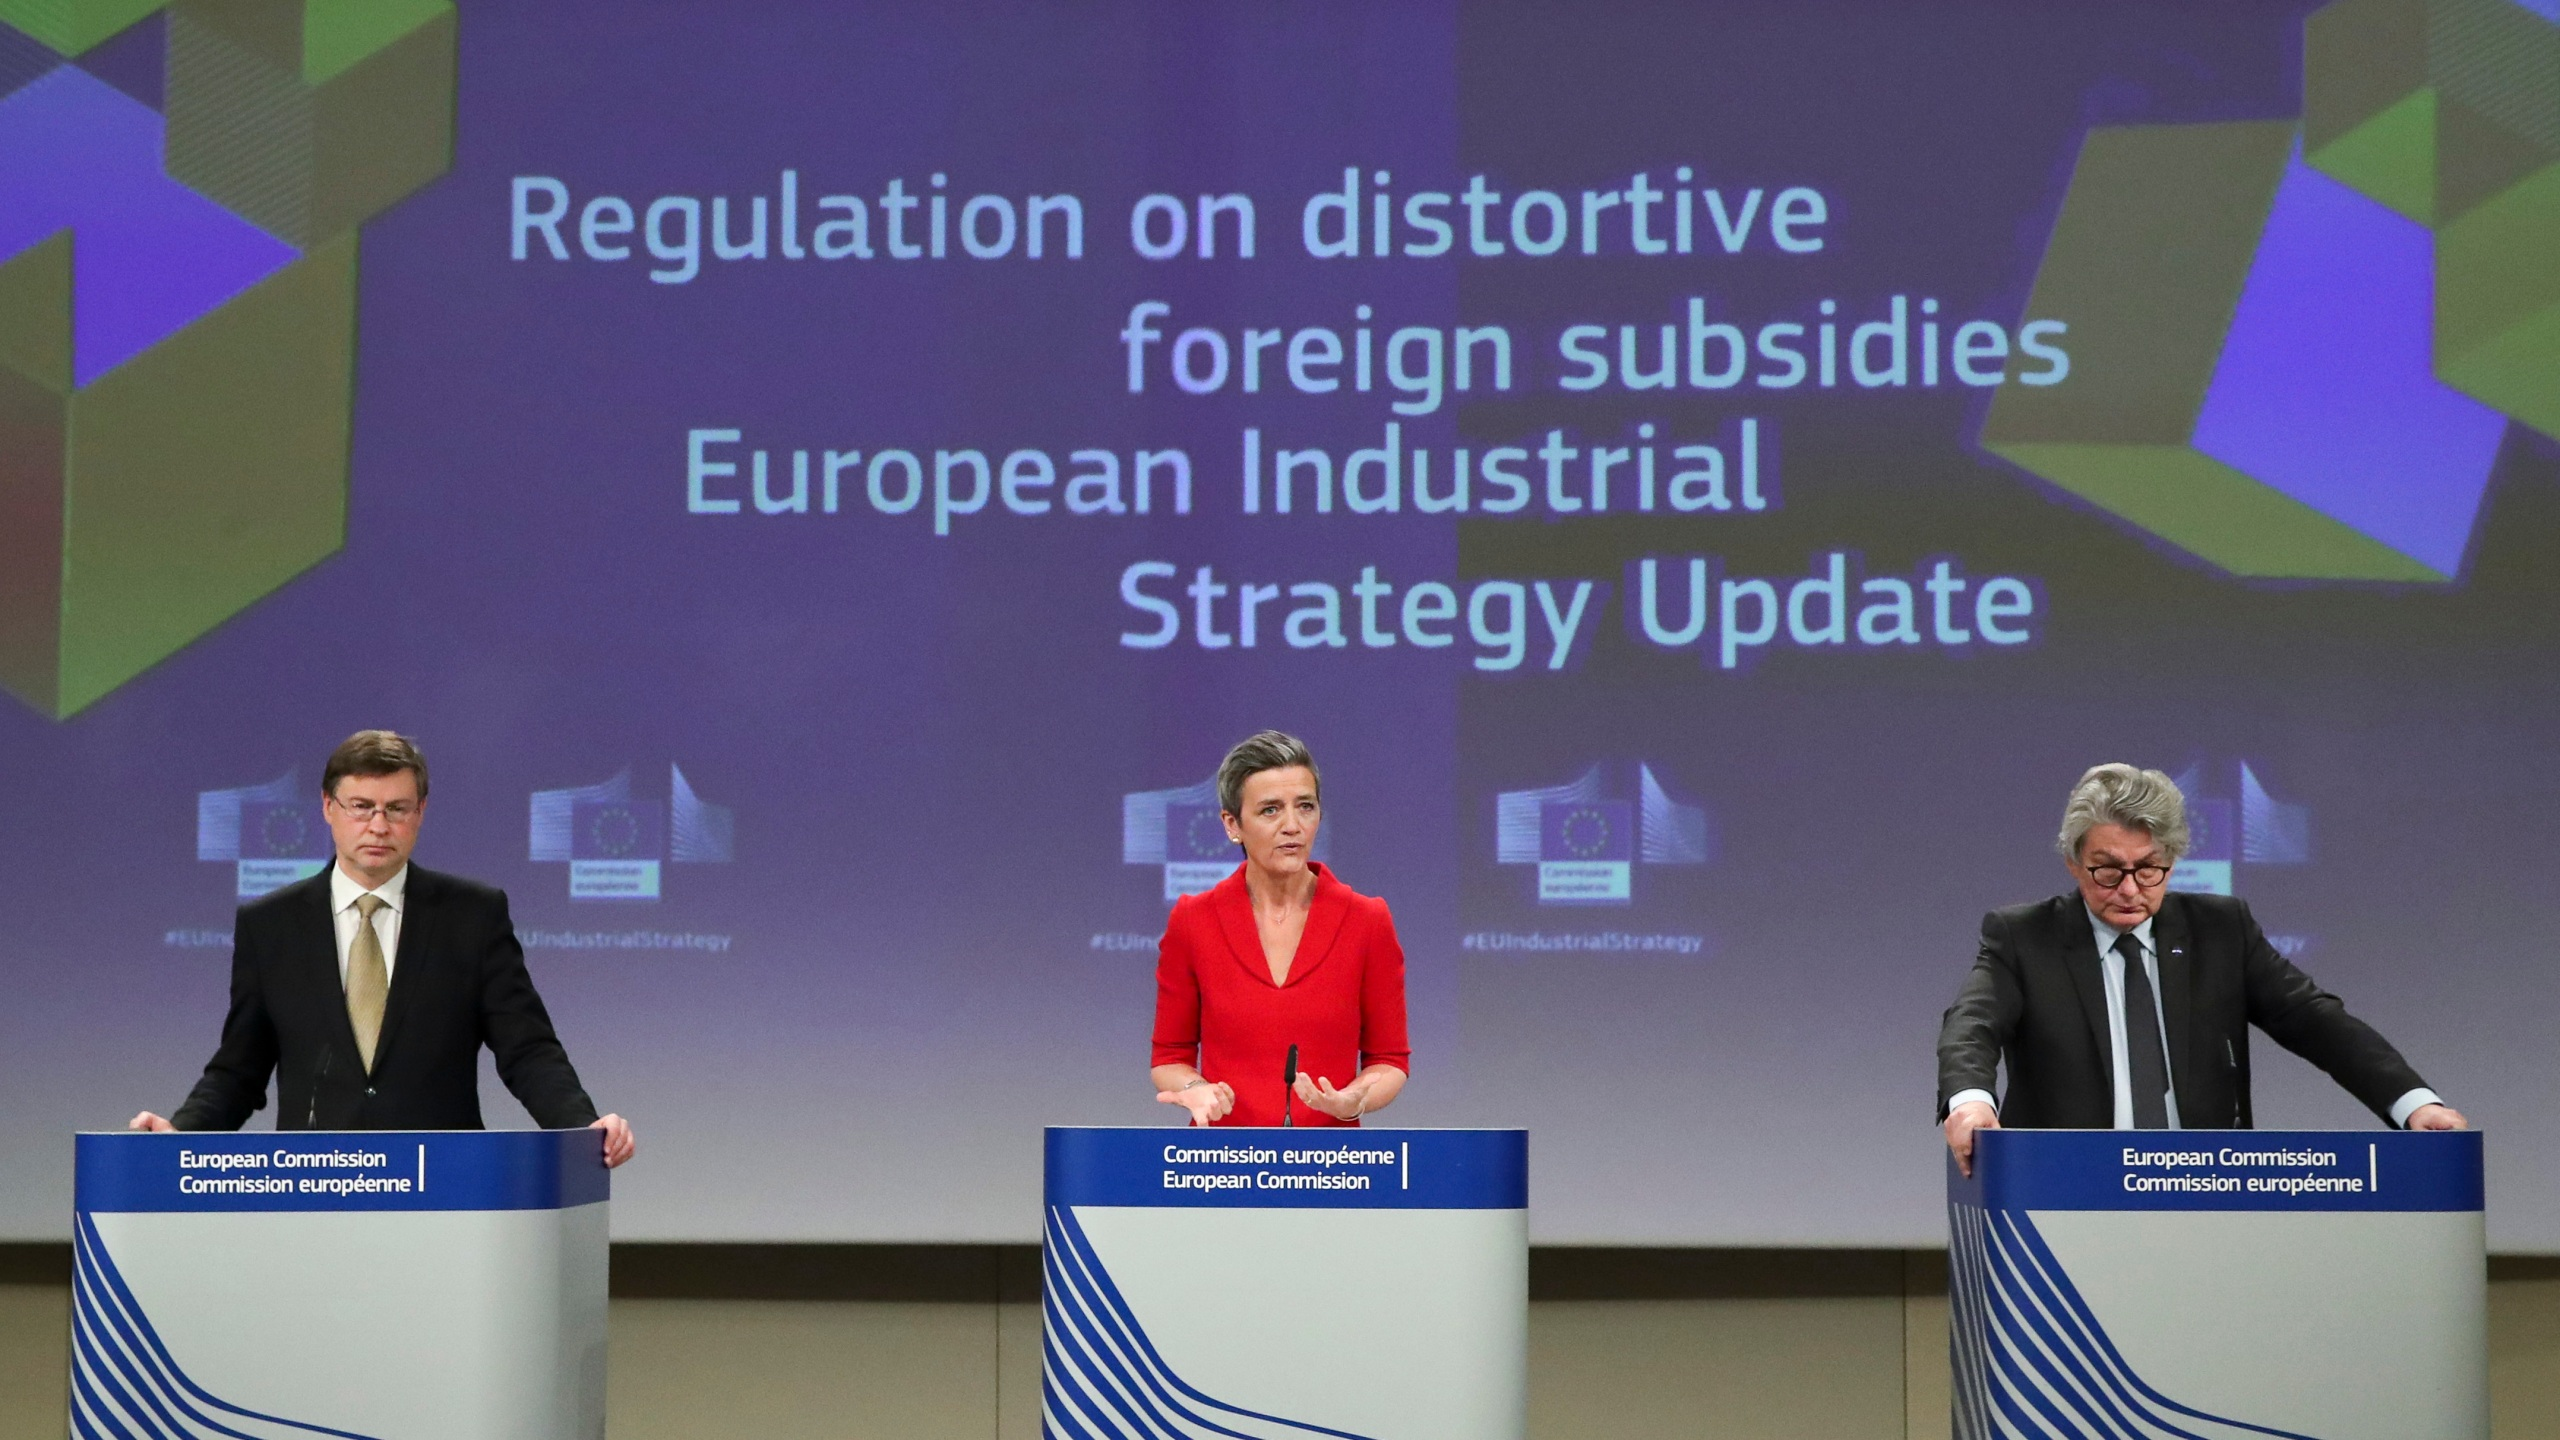 European Commission Vice Presidents Vestager and Dombrovskis, and EU Commissioner for Internal Market Breton news conference in Brussels